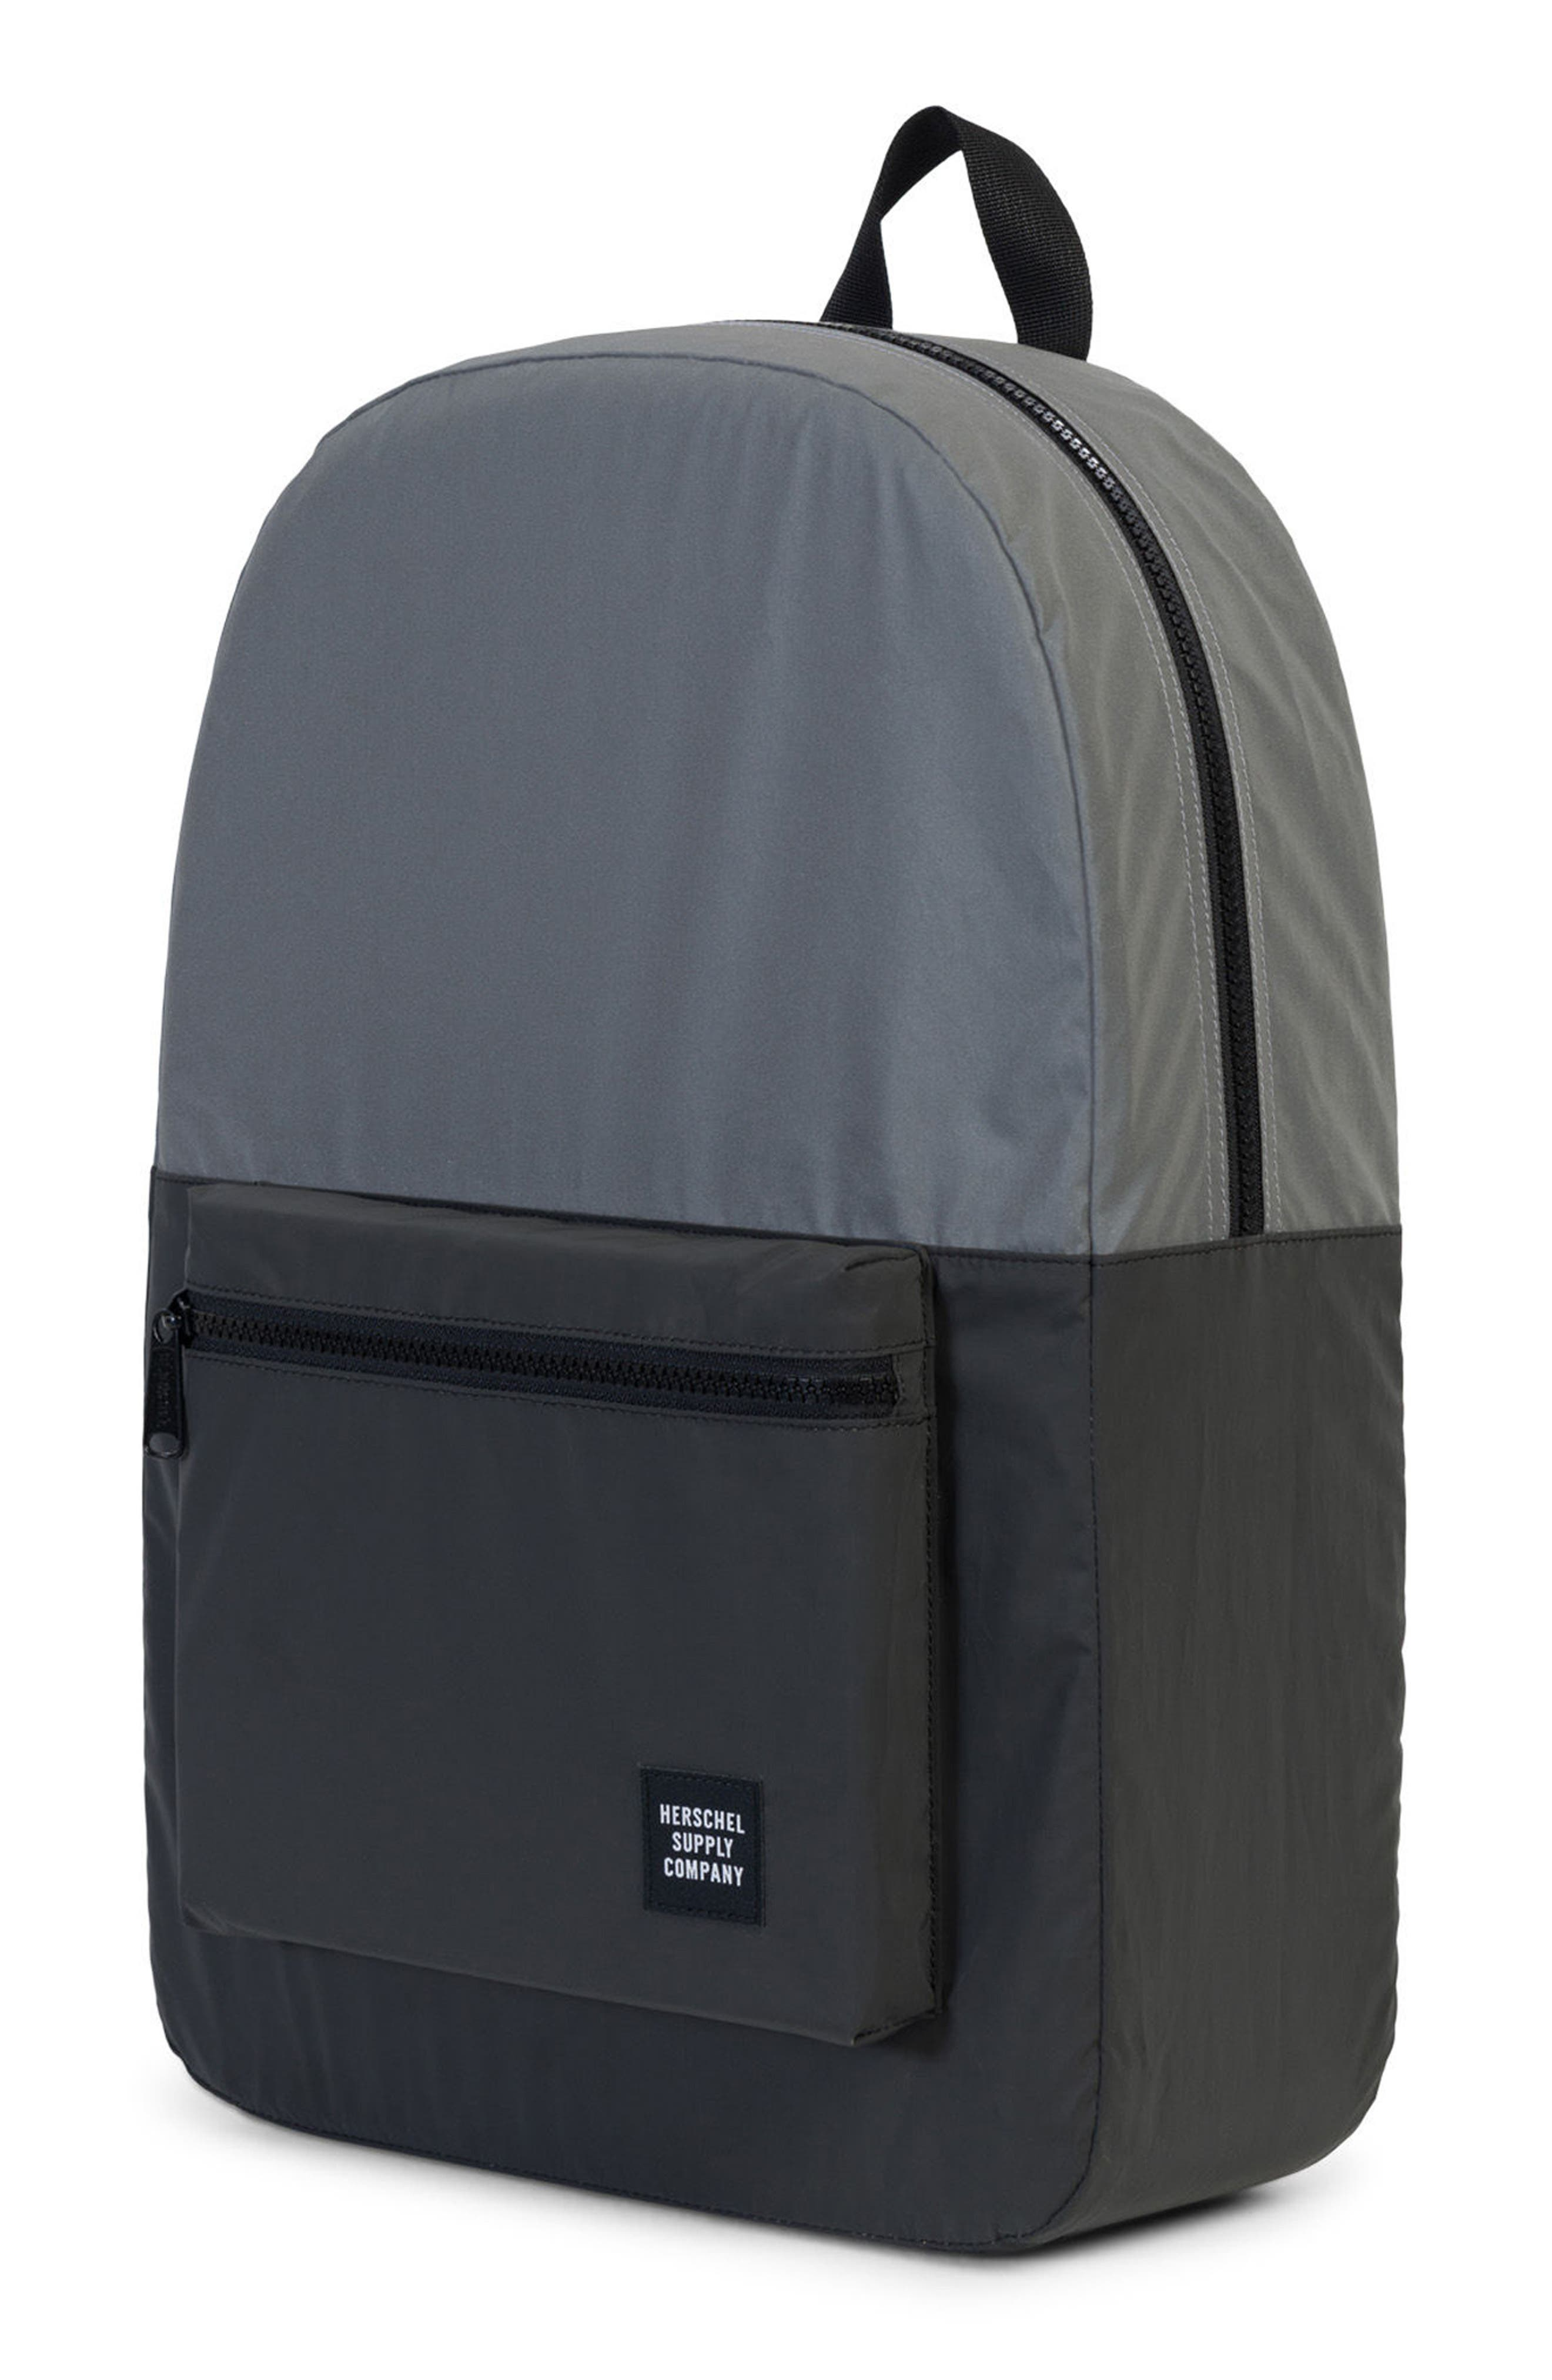 Heritage Reflective Backpack,                             Alternate thumbnail 6, color,                             050